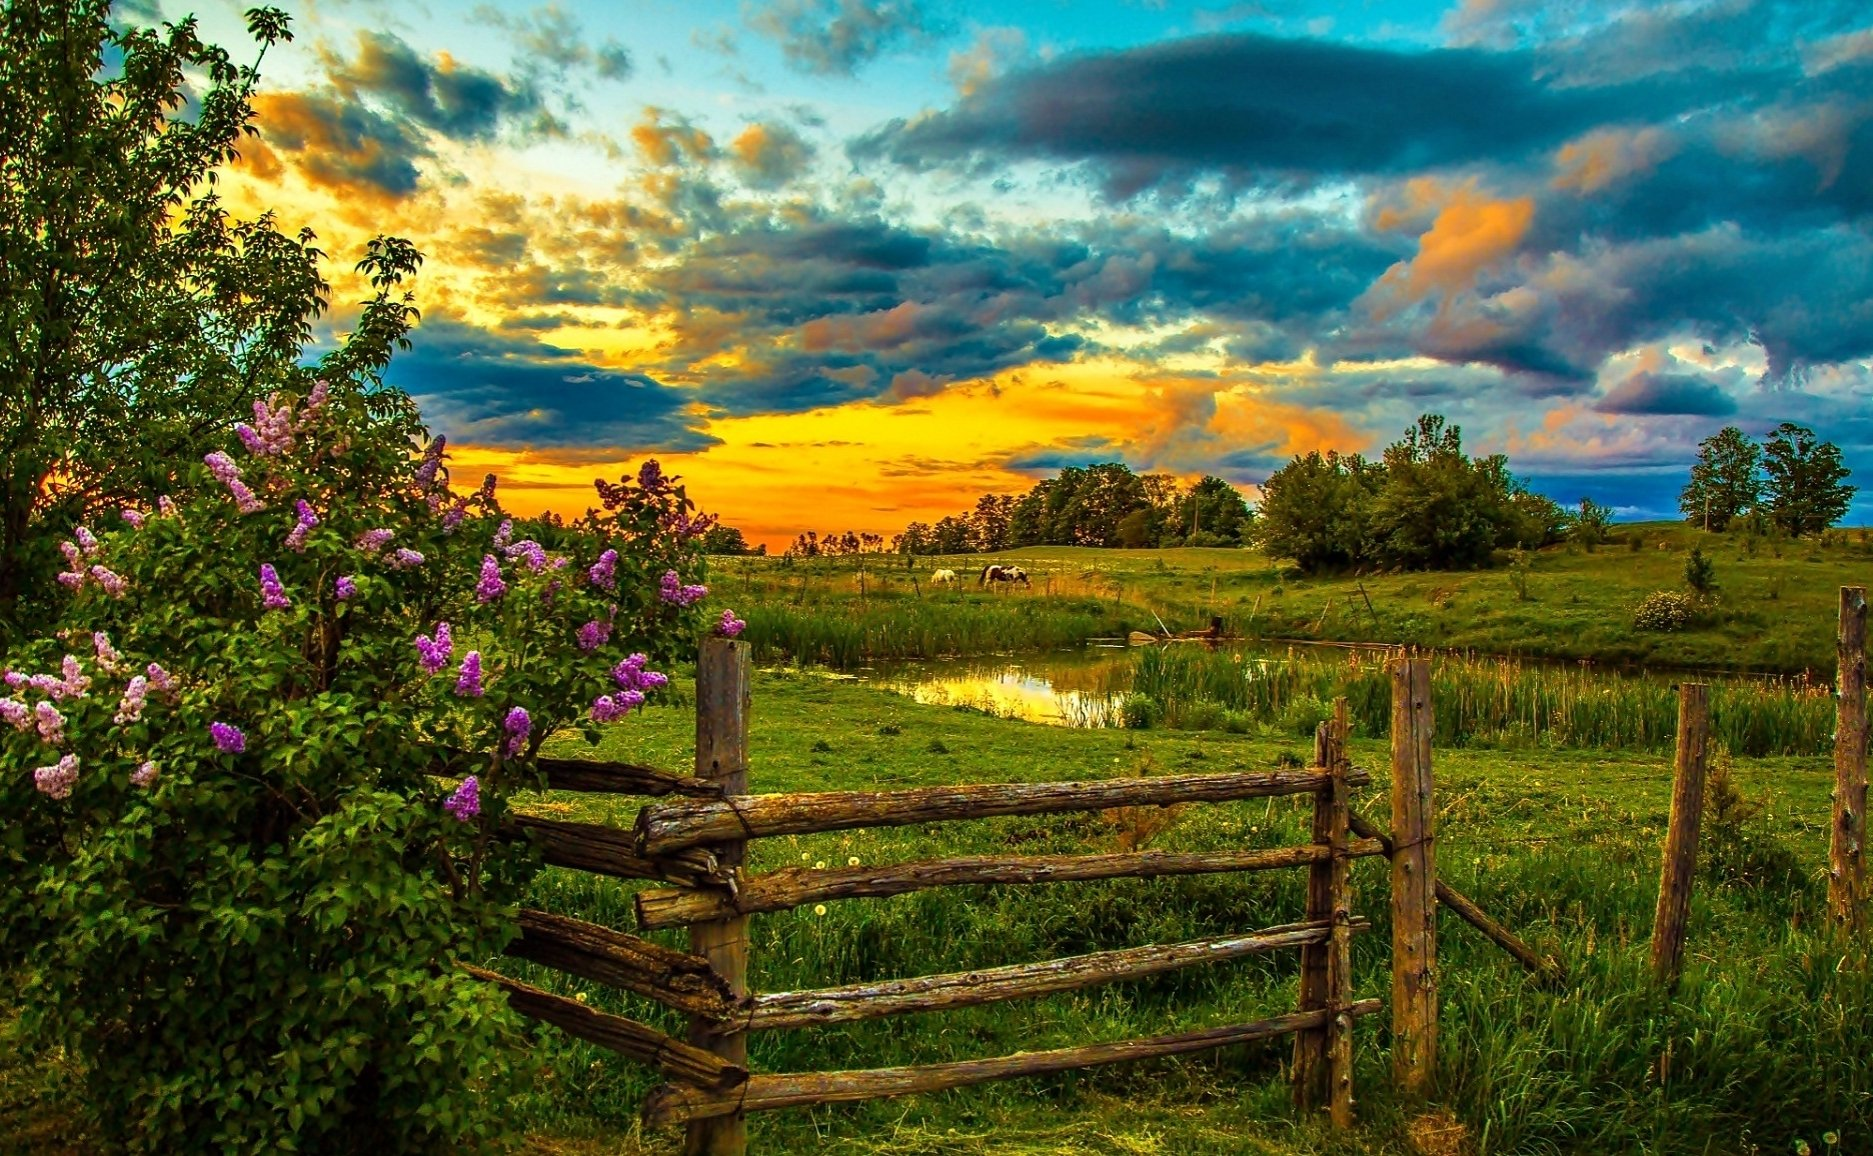 Fall Desktop Wallpaper Pinterest Spring Farm At Sunset Wallpaper And Background Image